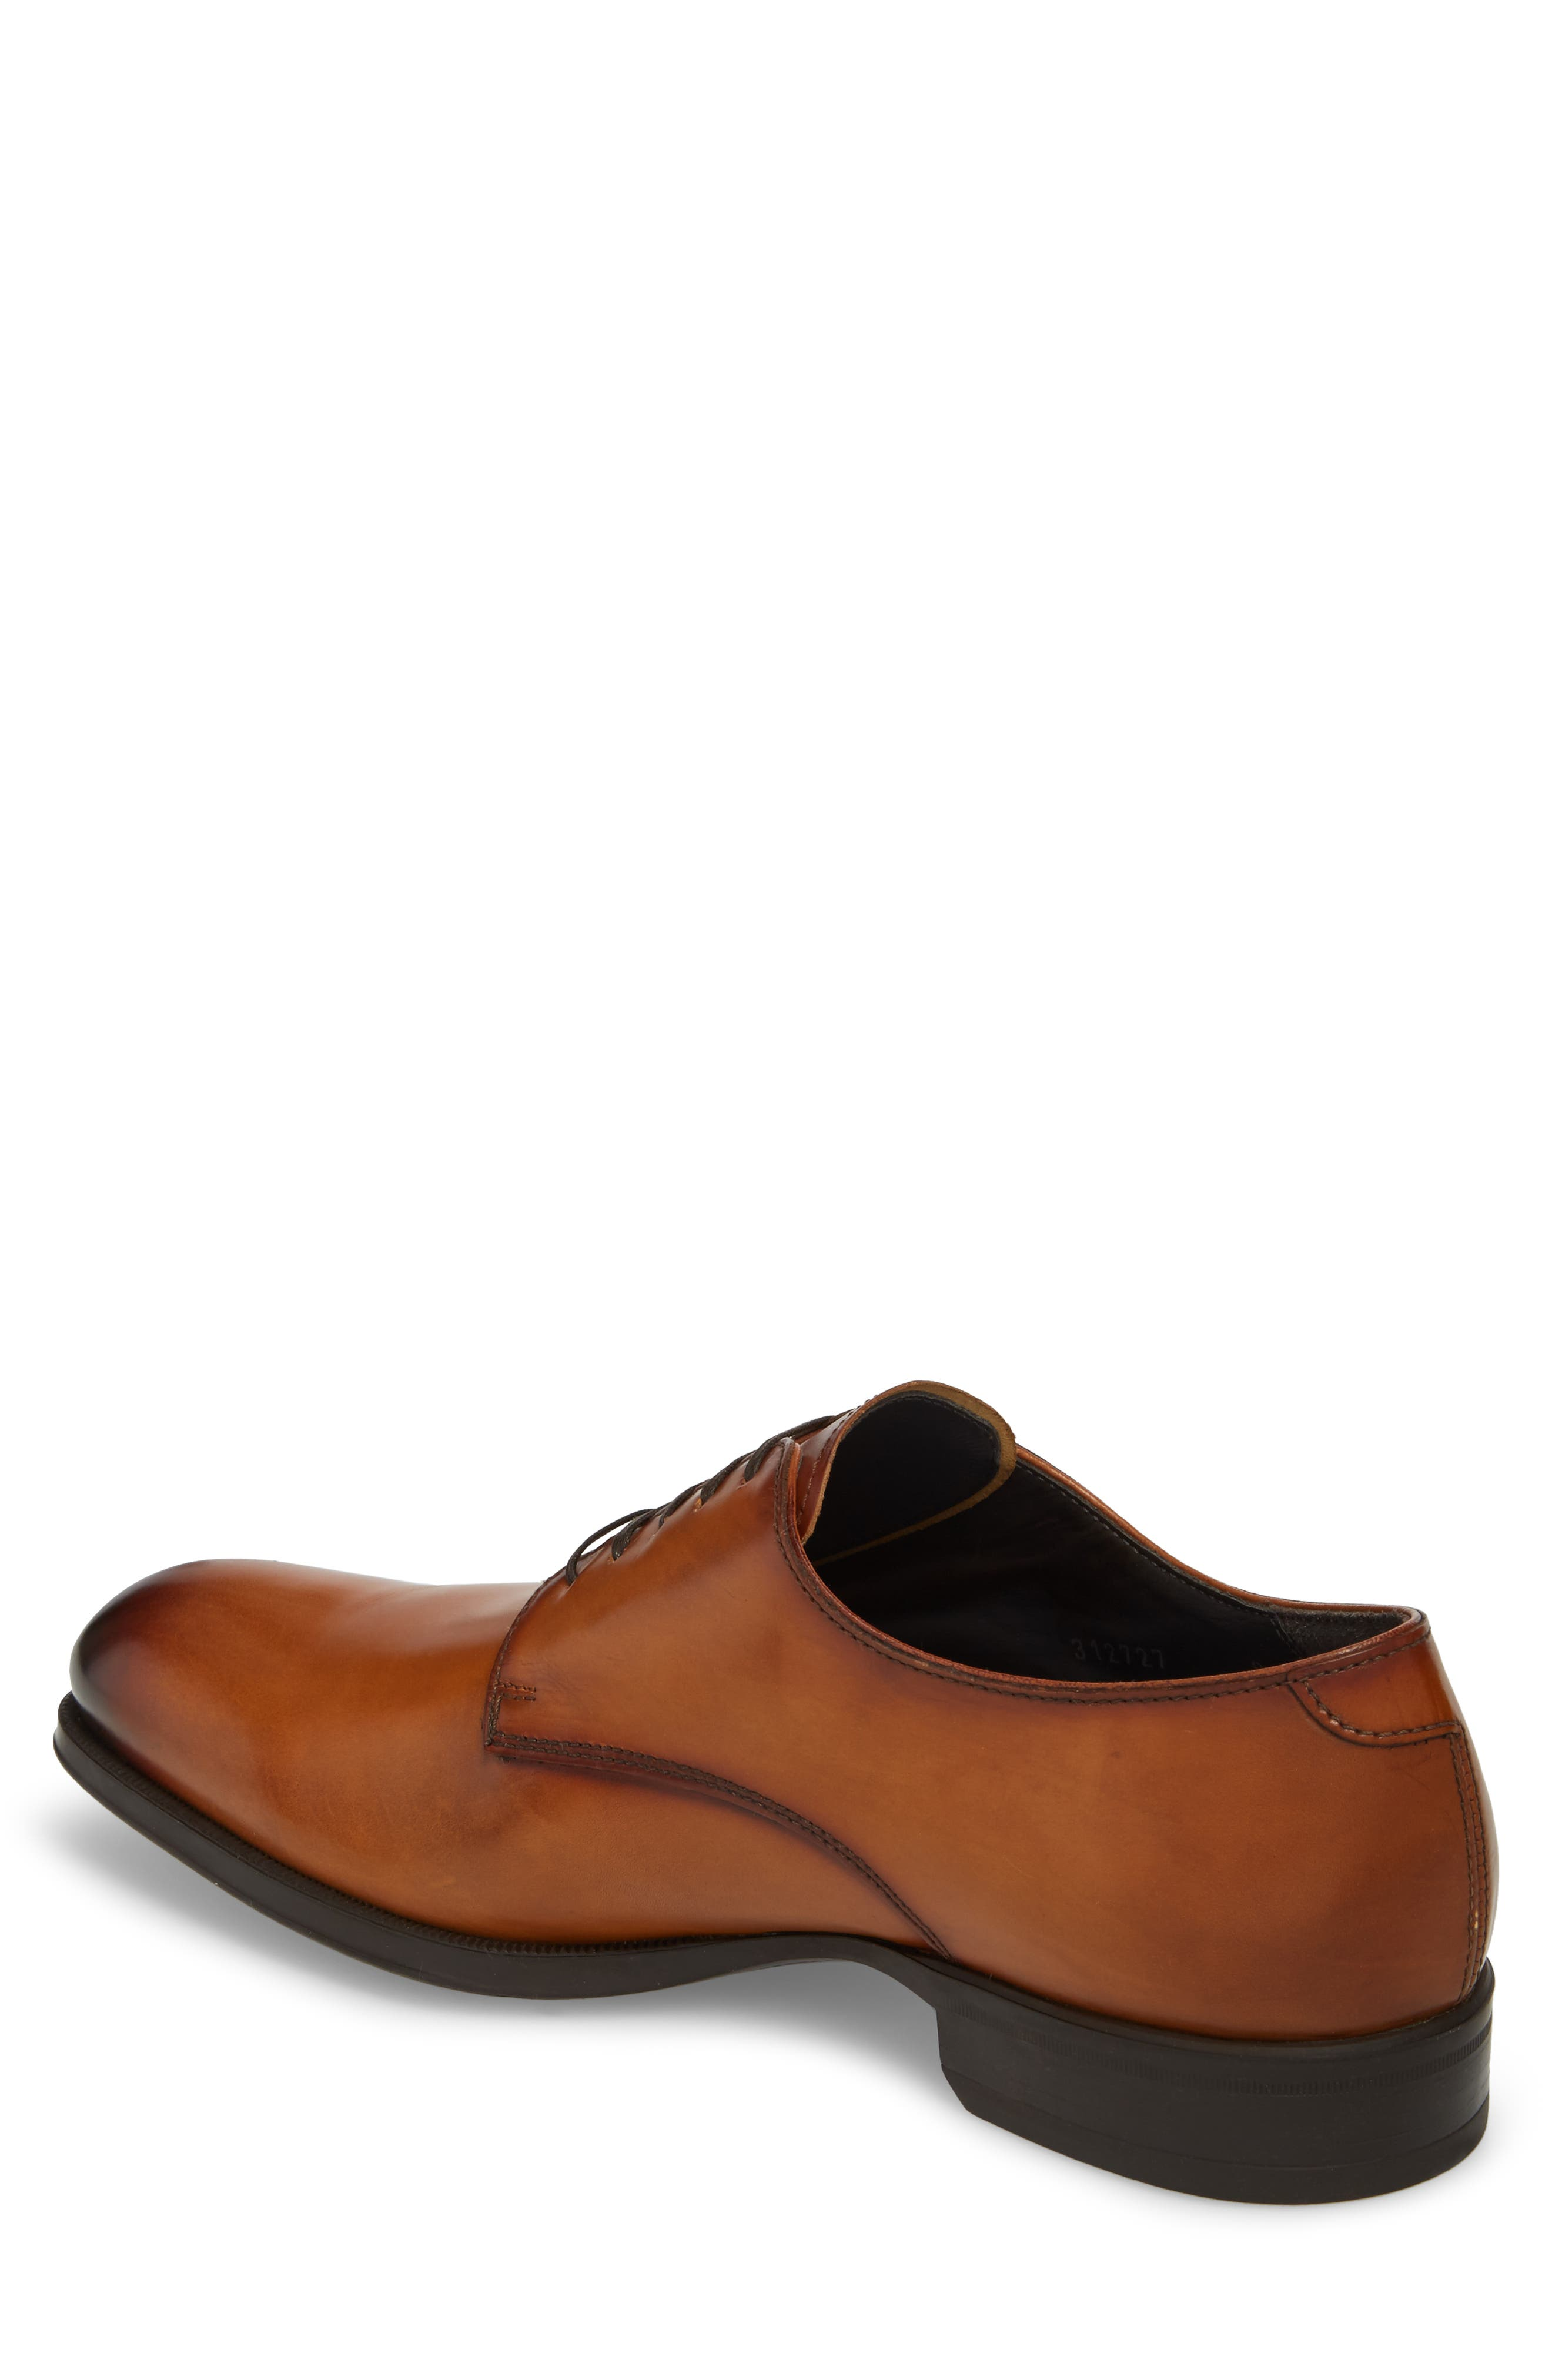 'Buchanan' Plain Toe Derby,                             Alternate thumbnail 2, color,                             Cuoio